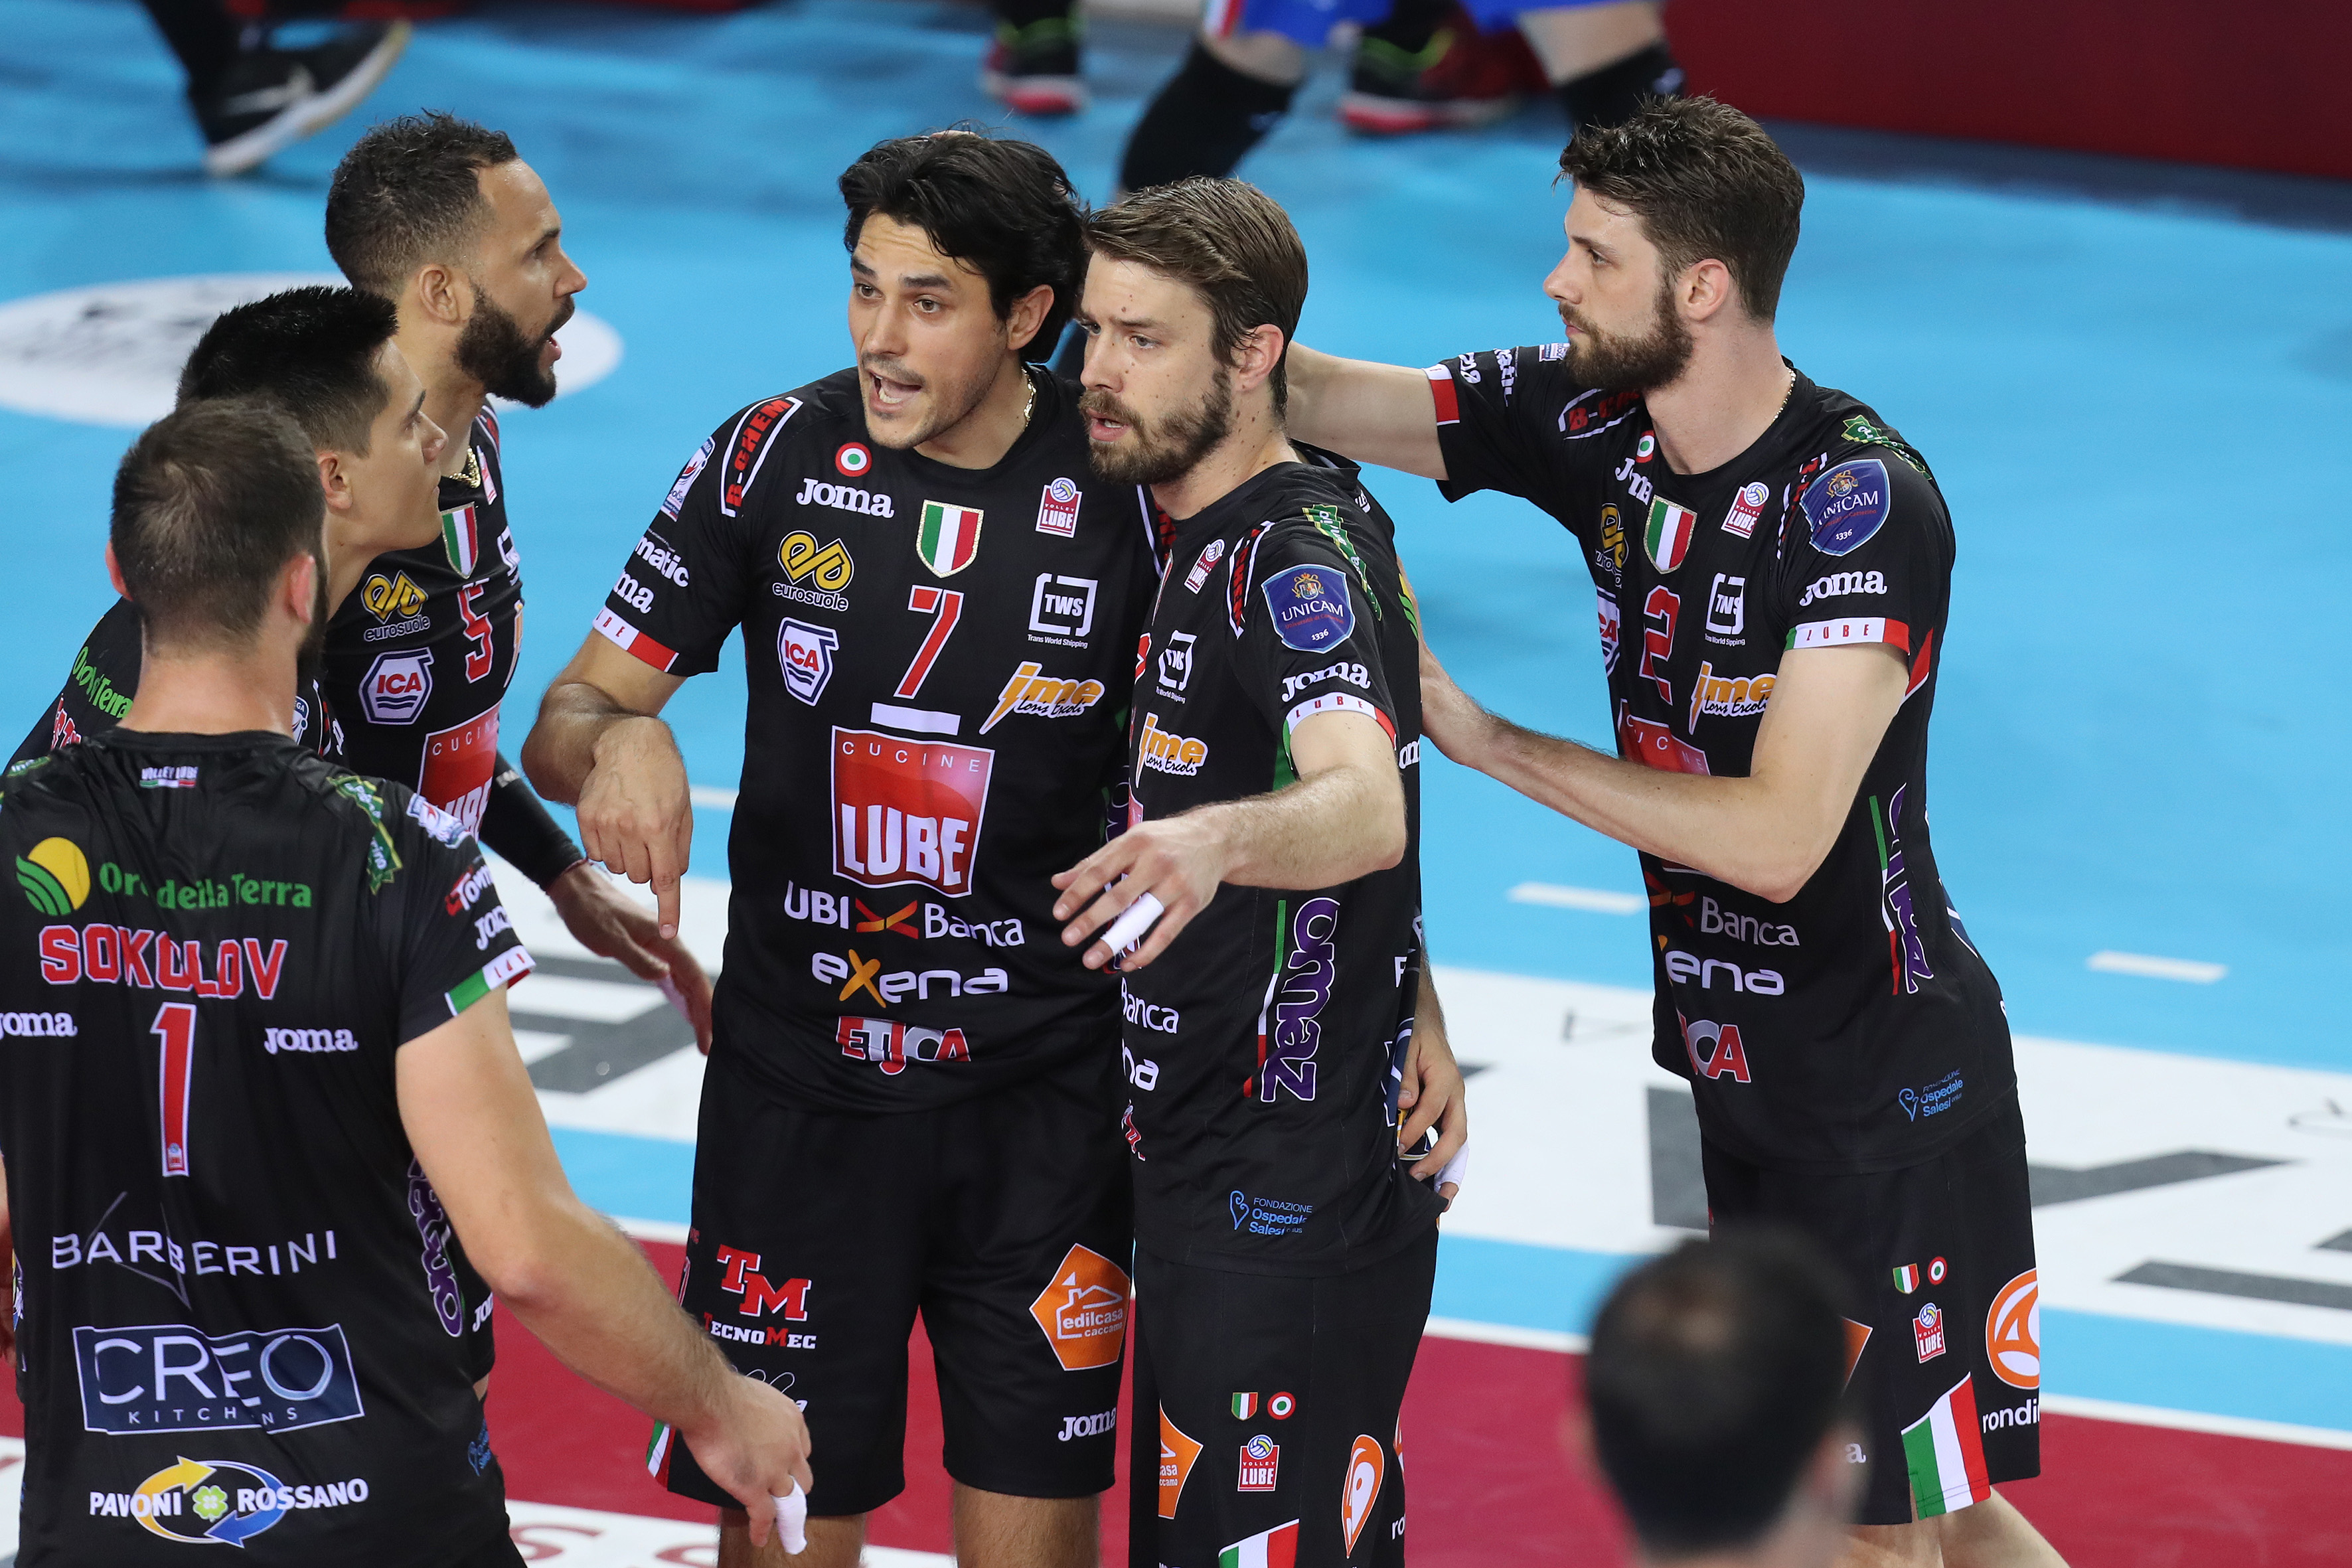 Volley, finale scudetto: Perugia-Civitanova 3-0. Scudetto Sir Safety!